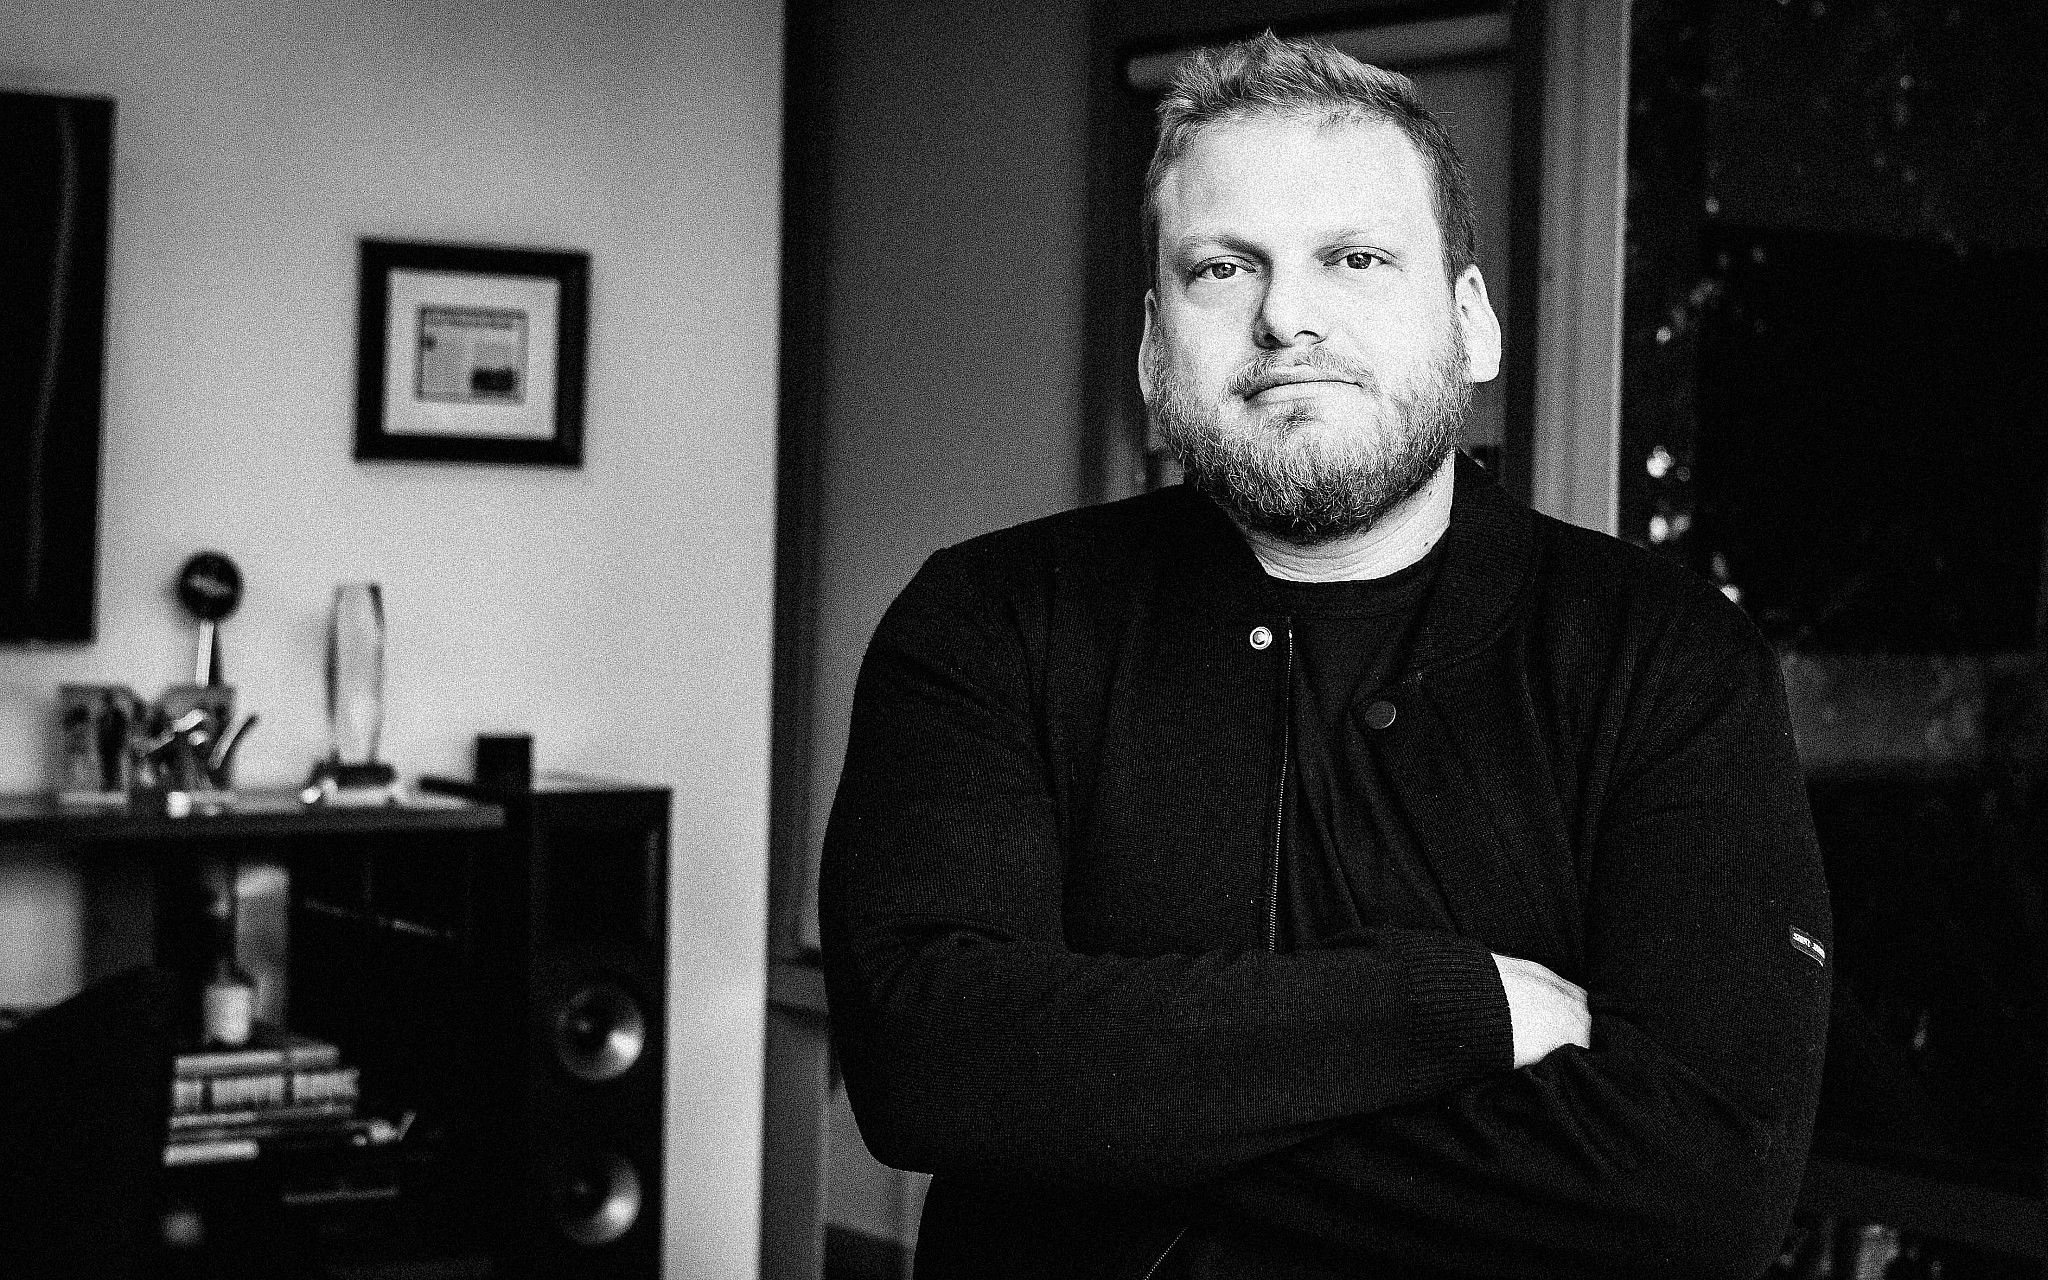 Maroon 5 manager and Jonah Hill's brother Jordan Feldstein dies aged 40